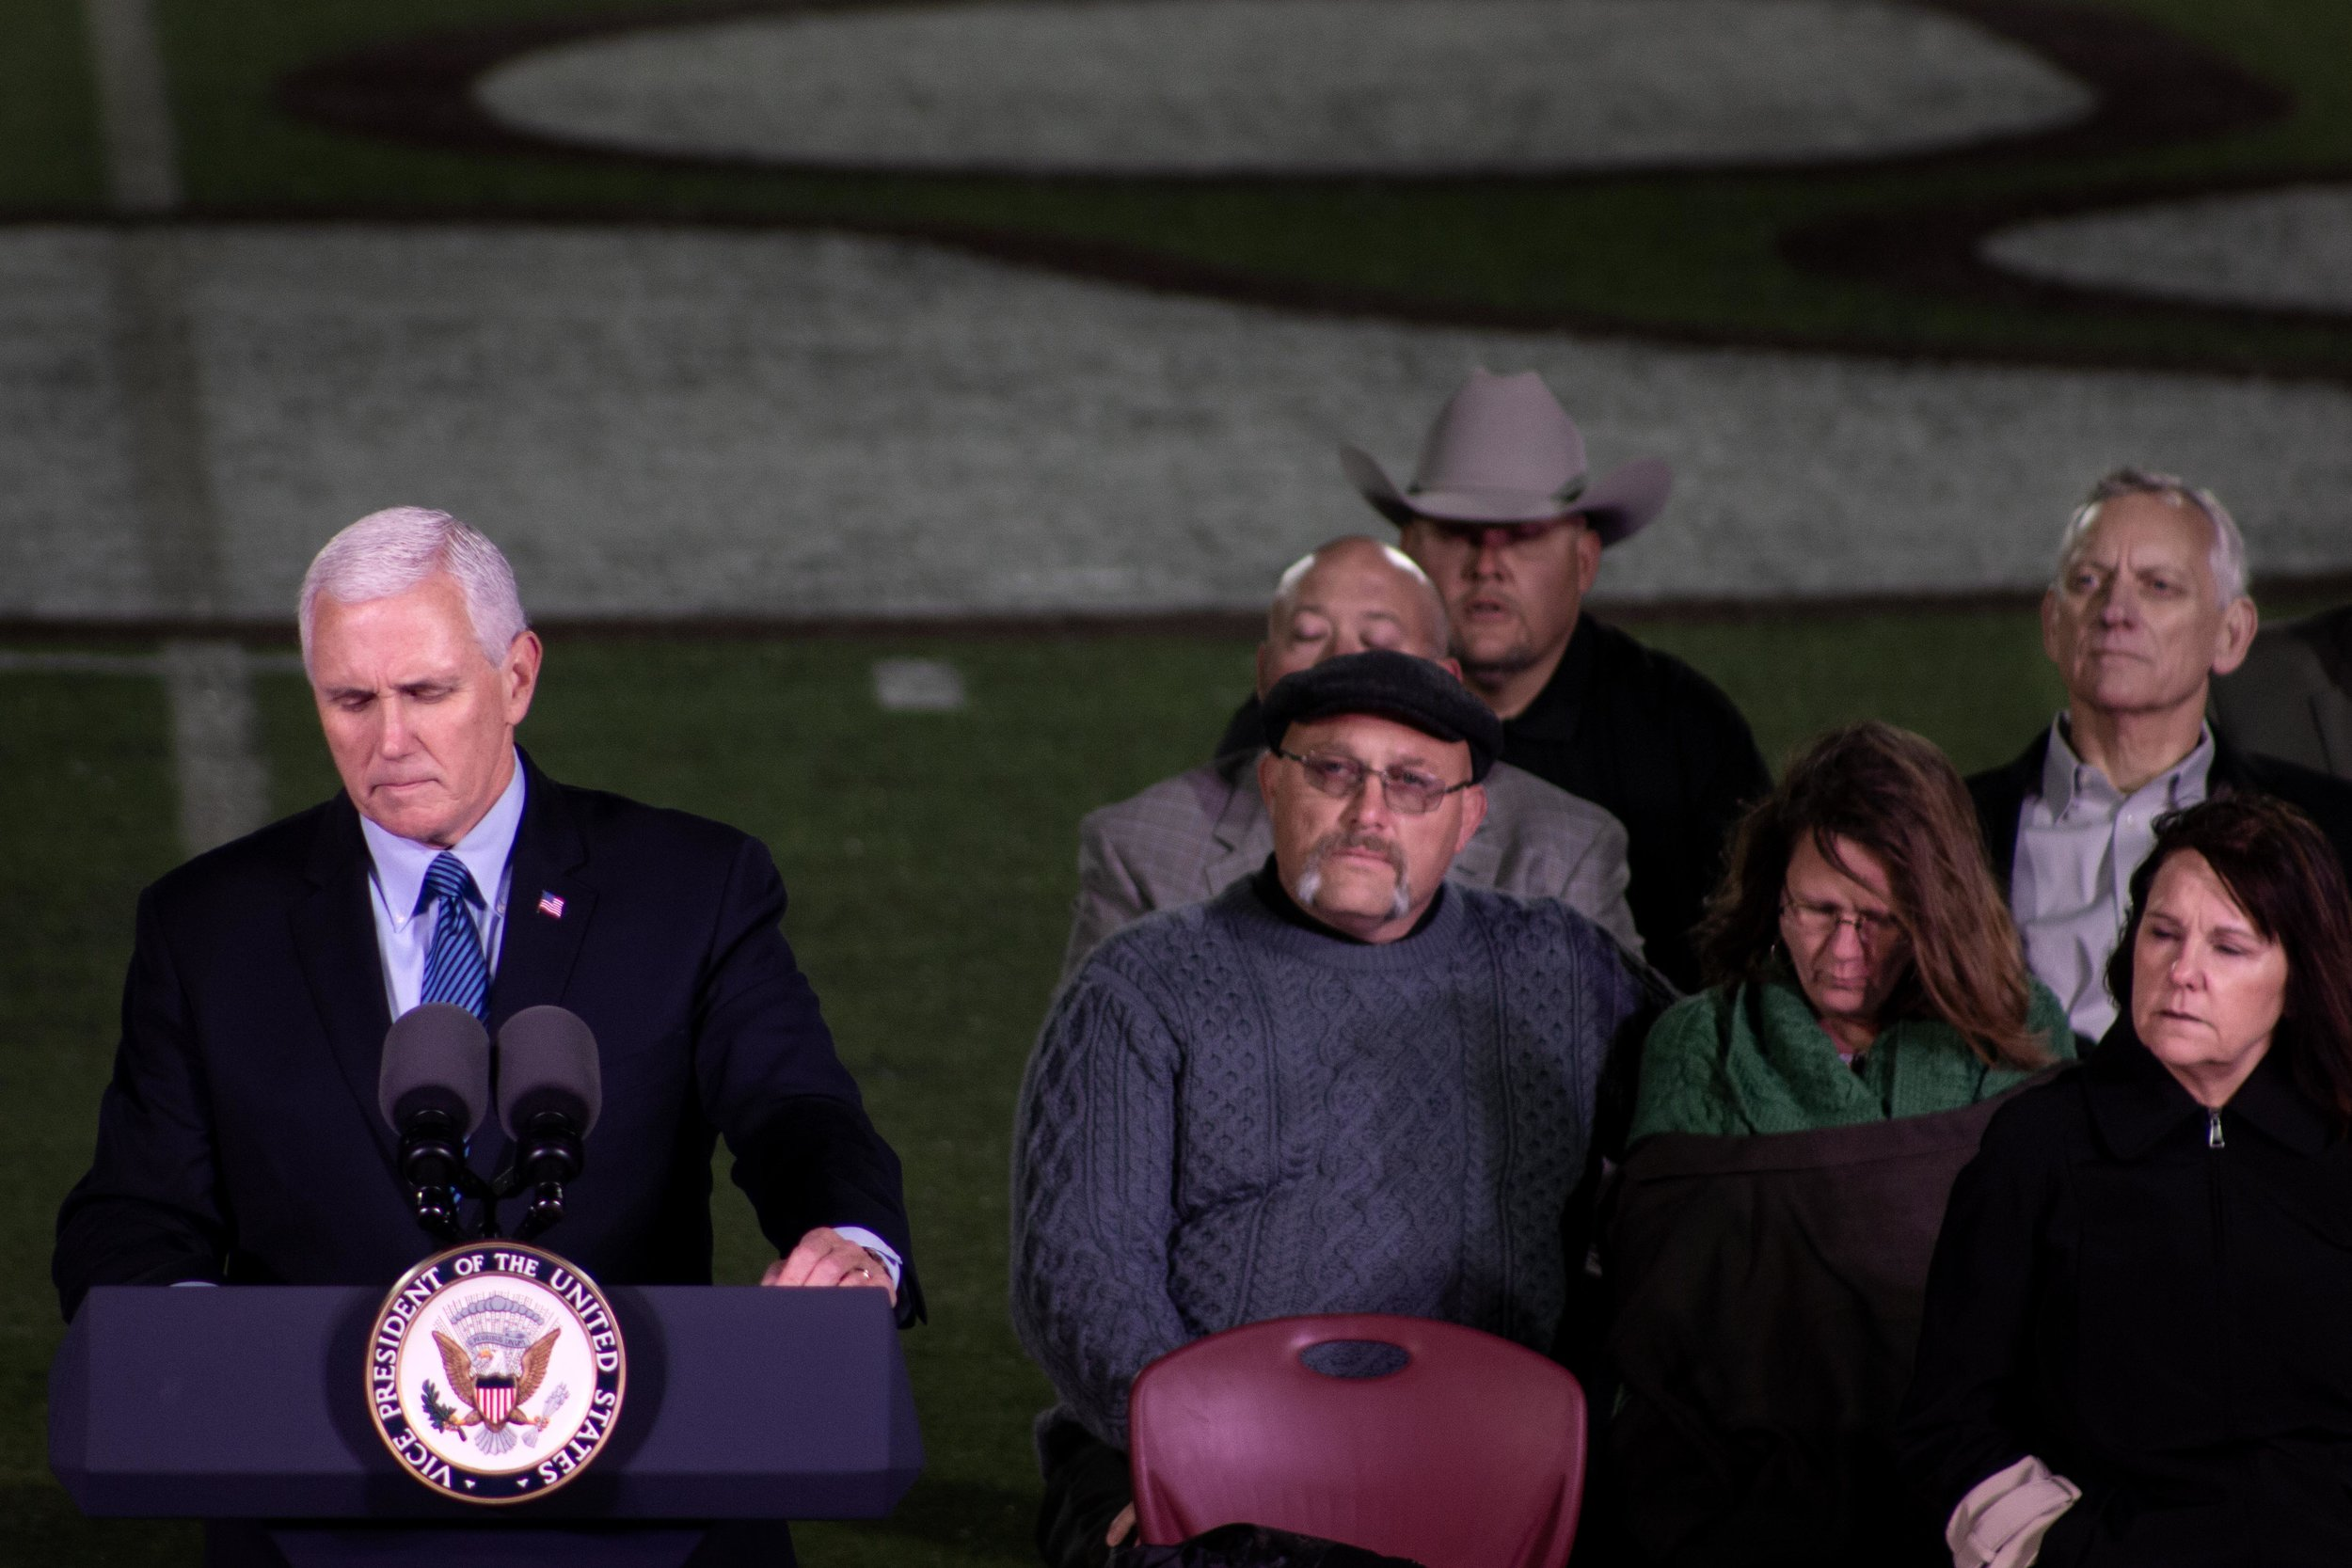 Vice President Mike Pence pauses during his speech at Floresville High School during a memorial for victims killed in the Nov, 5, 2017, church shooting in Sutherland Springs, Texas.